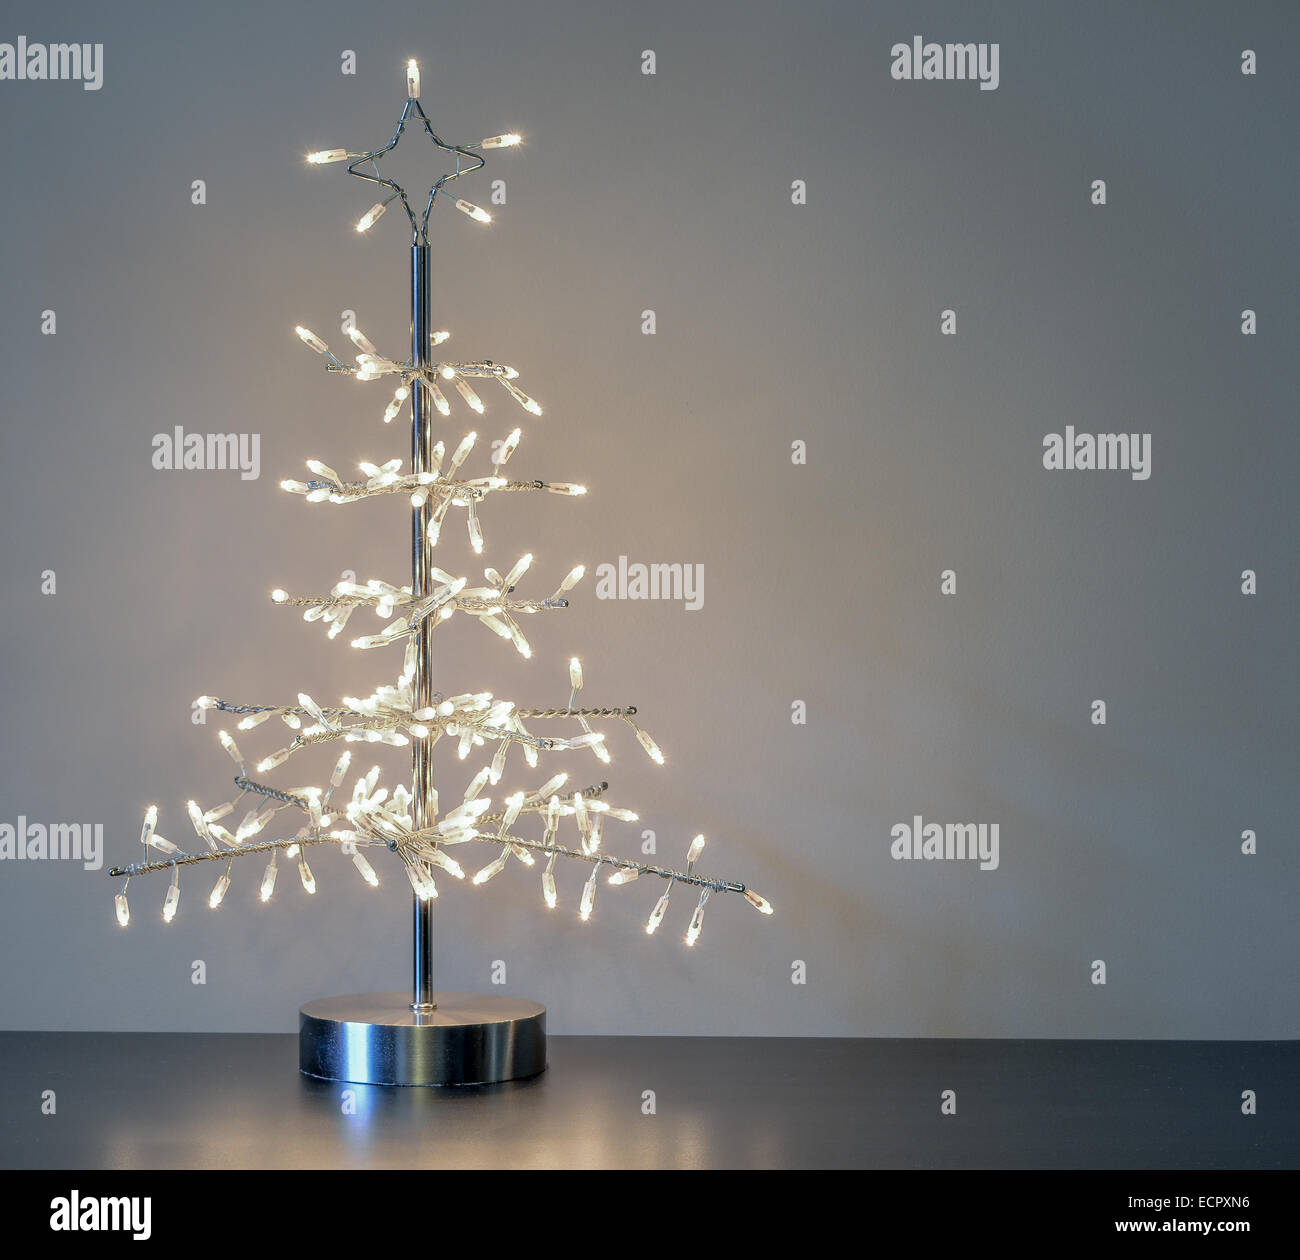 stock photo silver metal minimalist christmas tree ornament with white lights against plain neutral background with copyspace - Christmas White Lights